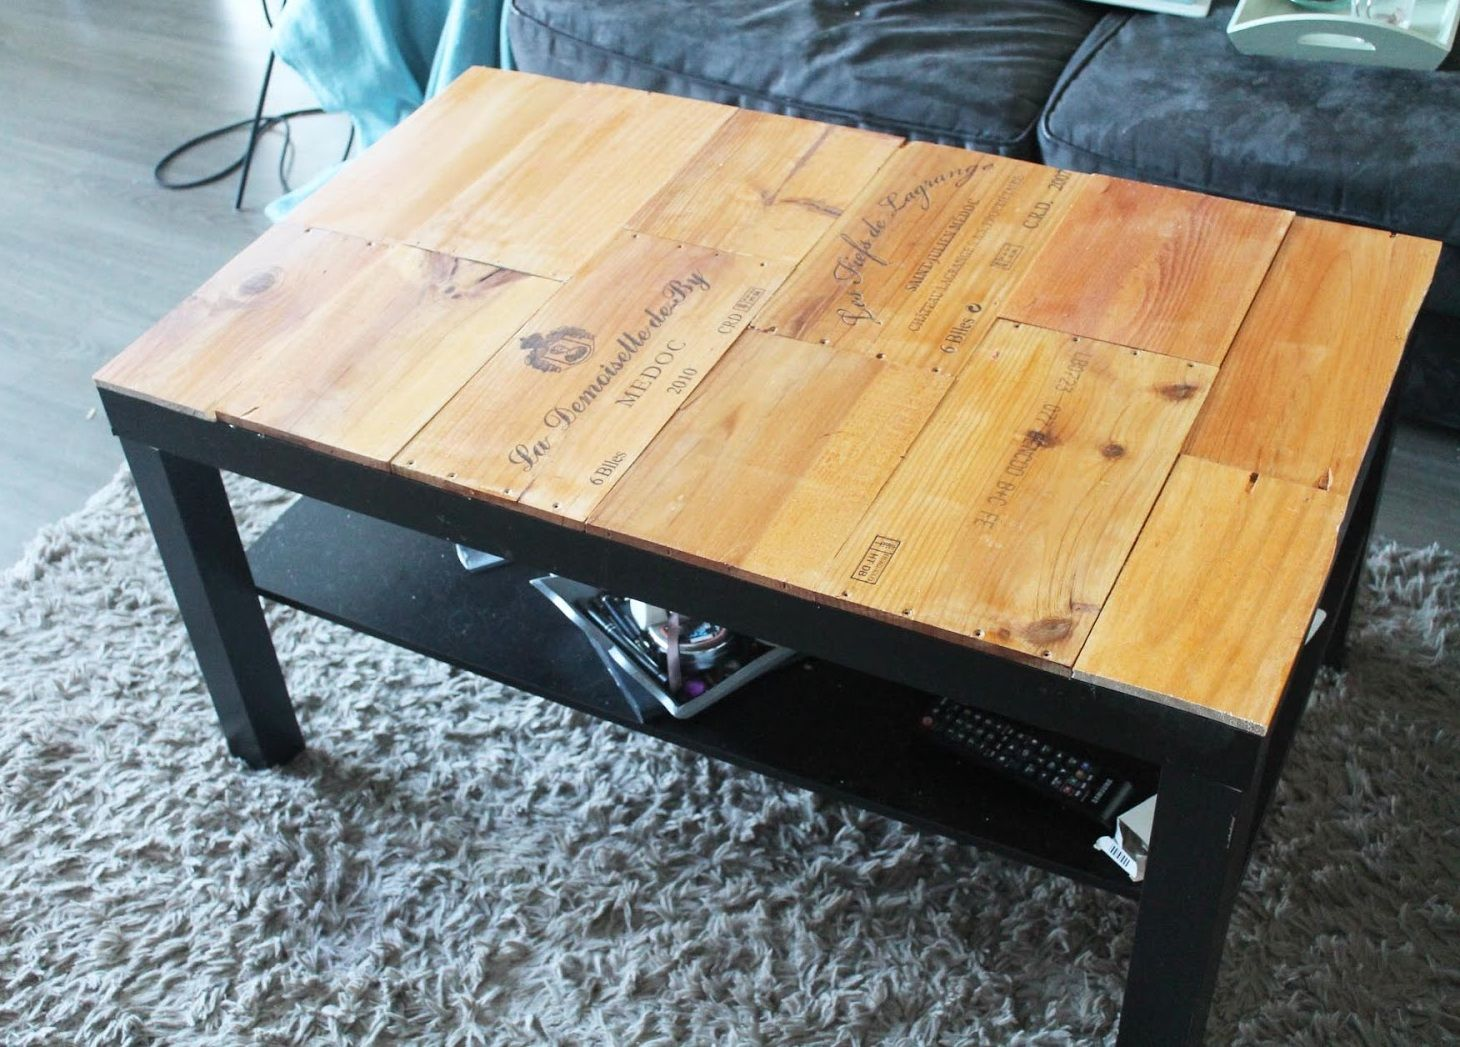 Tuto Customiser Une Table Basse Avec Des Caisses De Vin Customiser Table Basse Customiser Table Table Basse